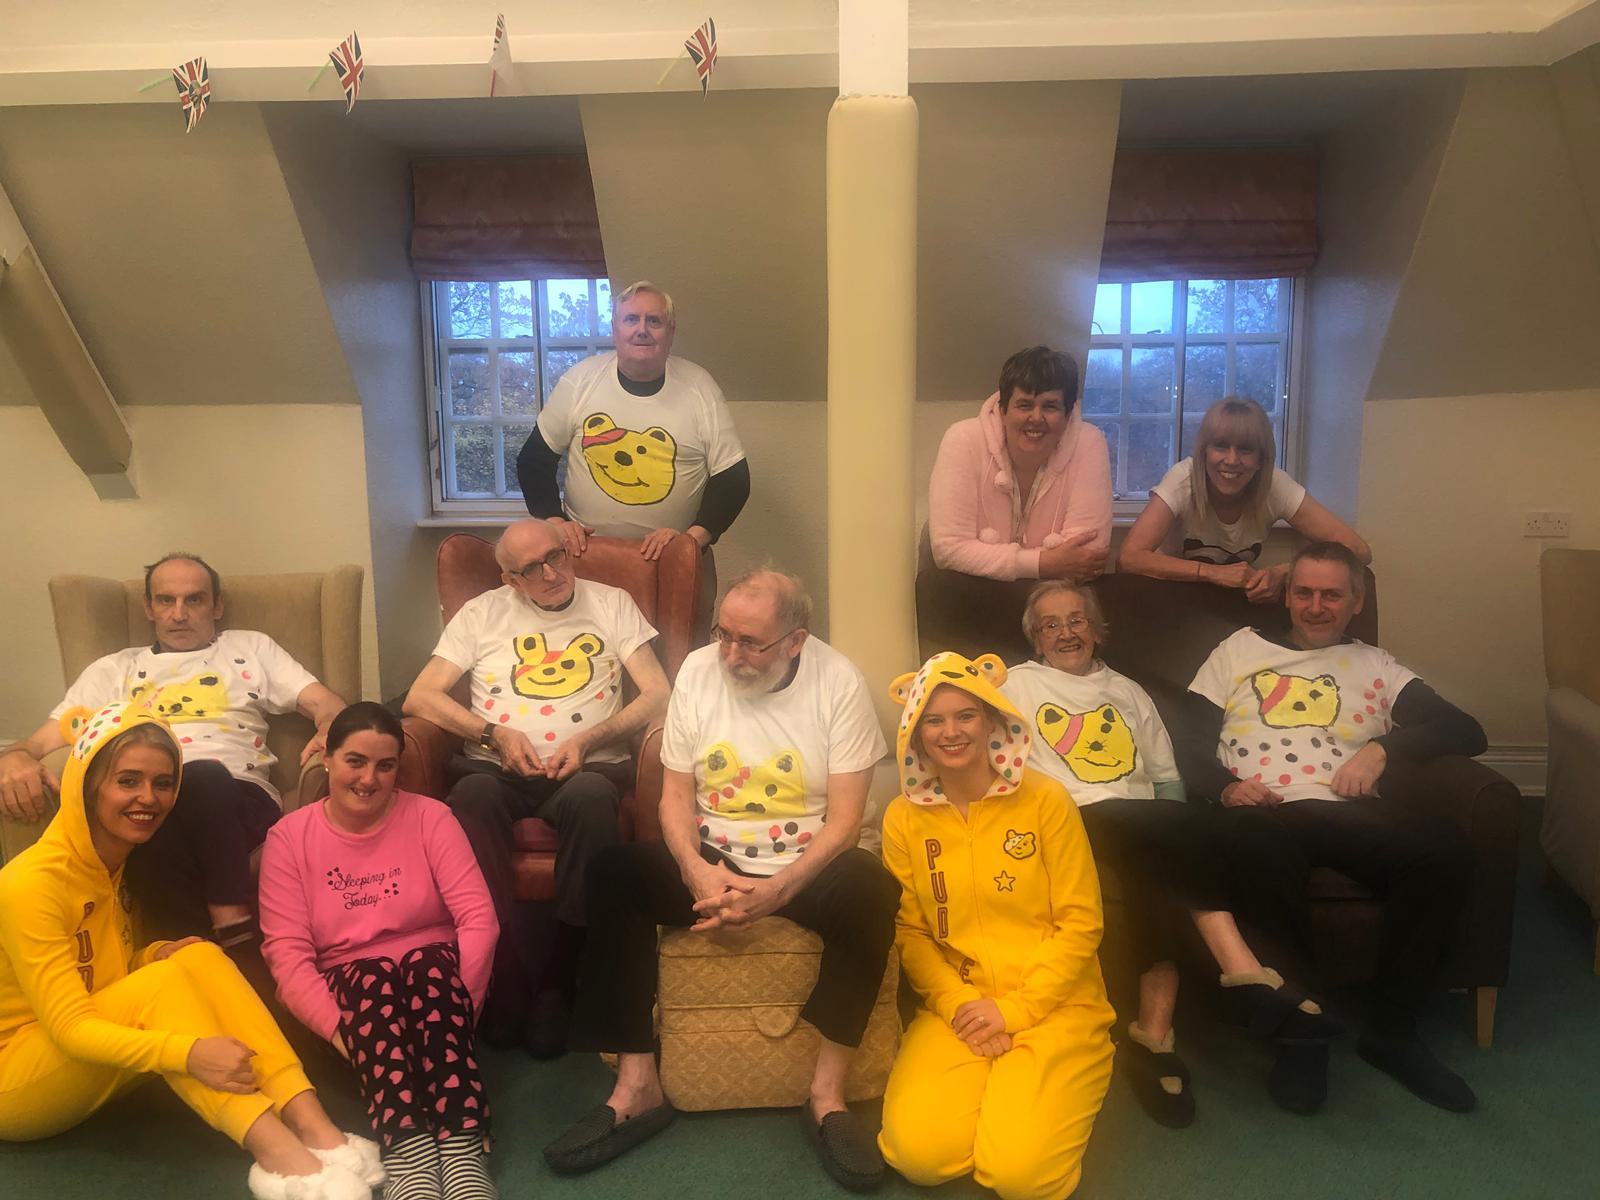 Children In Need 1: Key Healthcare is dedicated to caring for elderly residents in safe. We have multiple dementia care homes including our care home middlesbrough, our care home St. Helen and care home saltburn. We excel in monitoring and improving care levels.